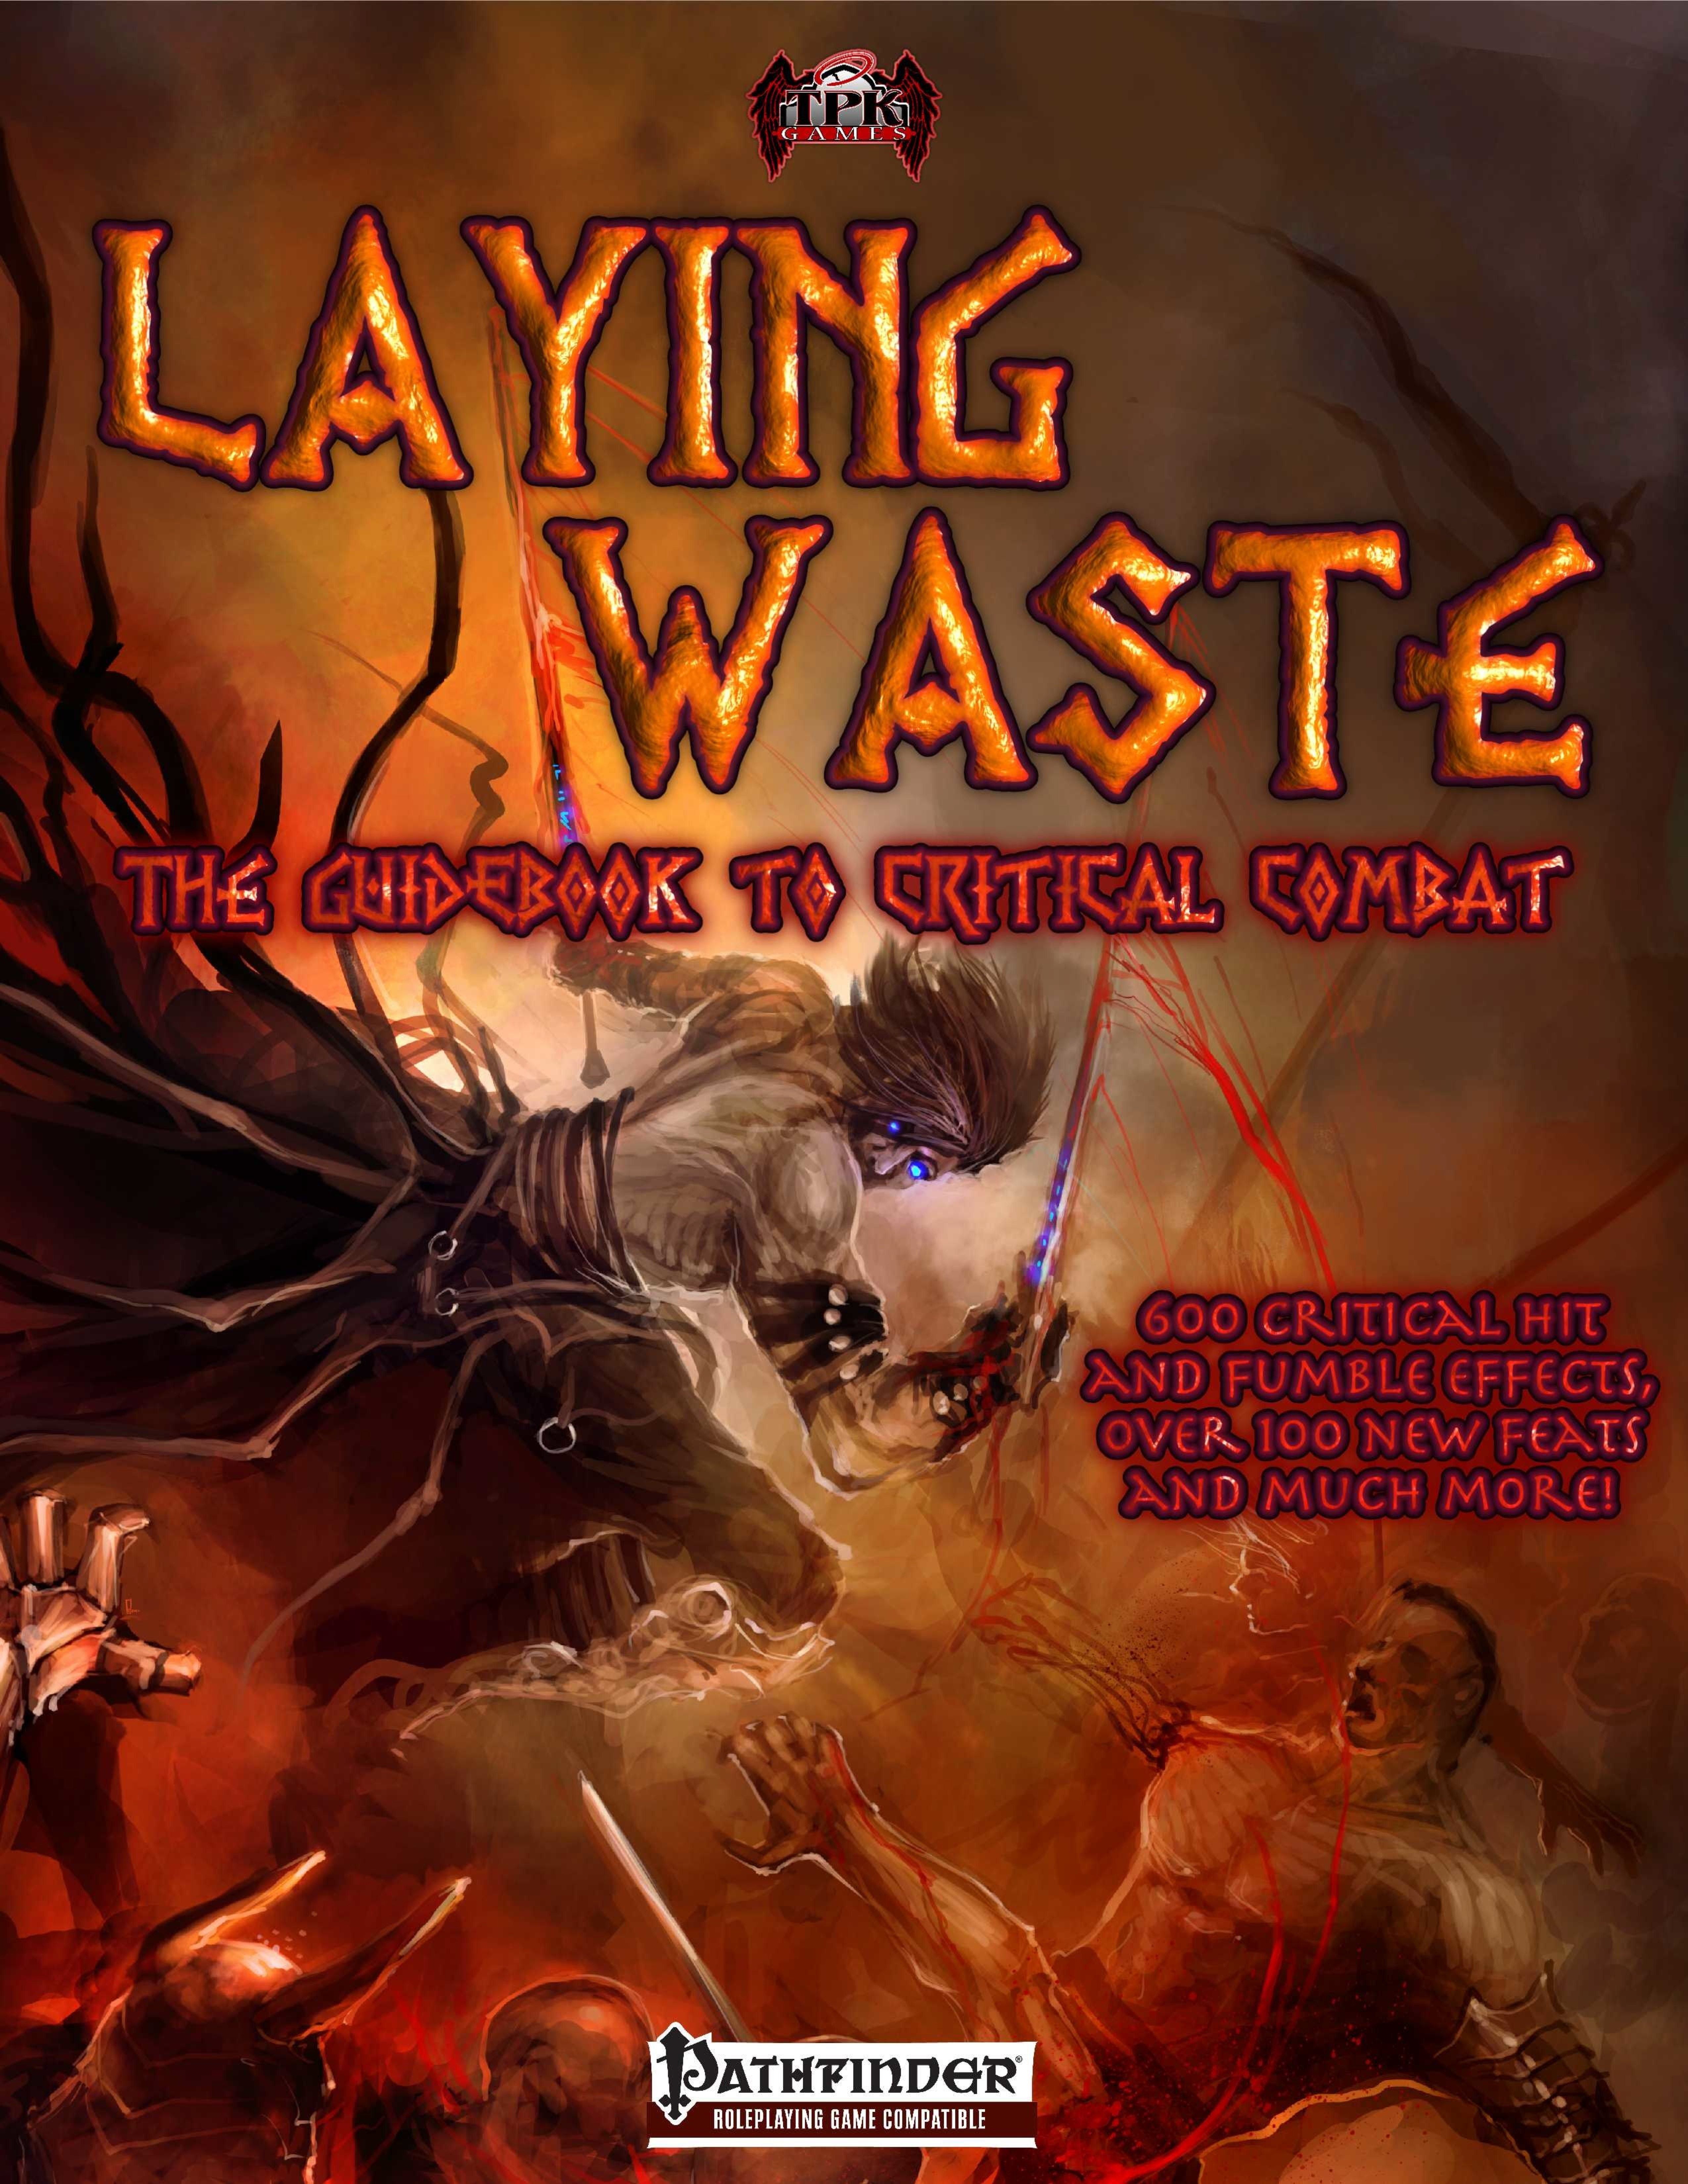 http://paizo.com/products/btpy988z?Laying-Waste-The-Guidebook-to-Critical-Combat